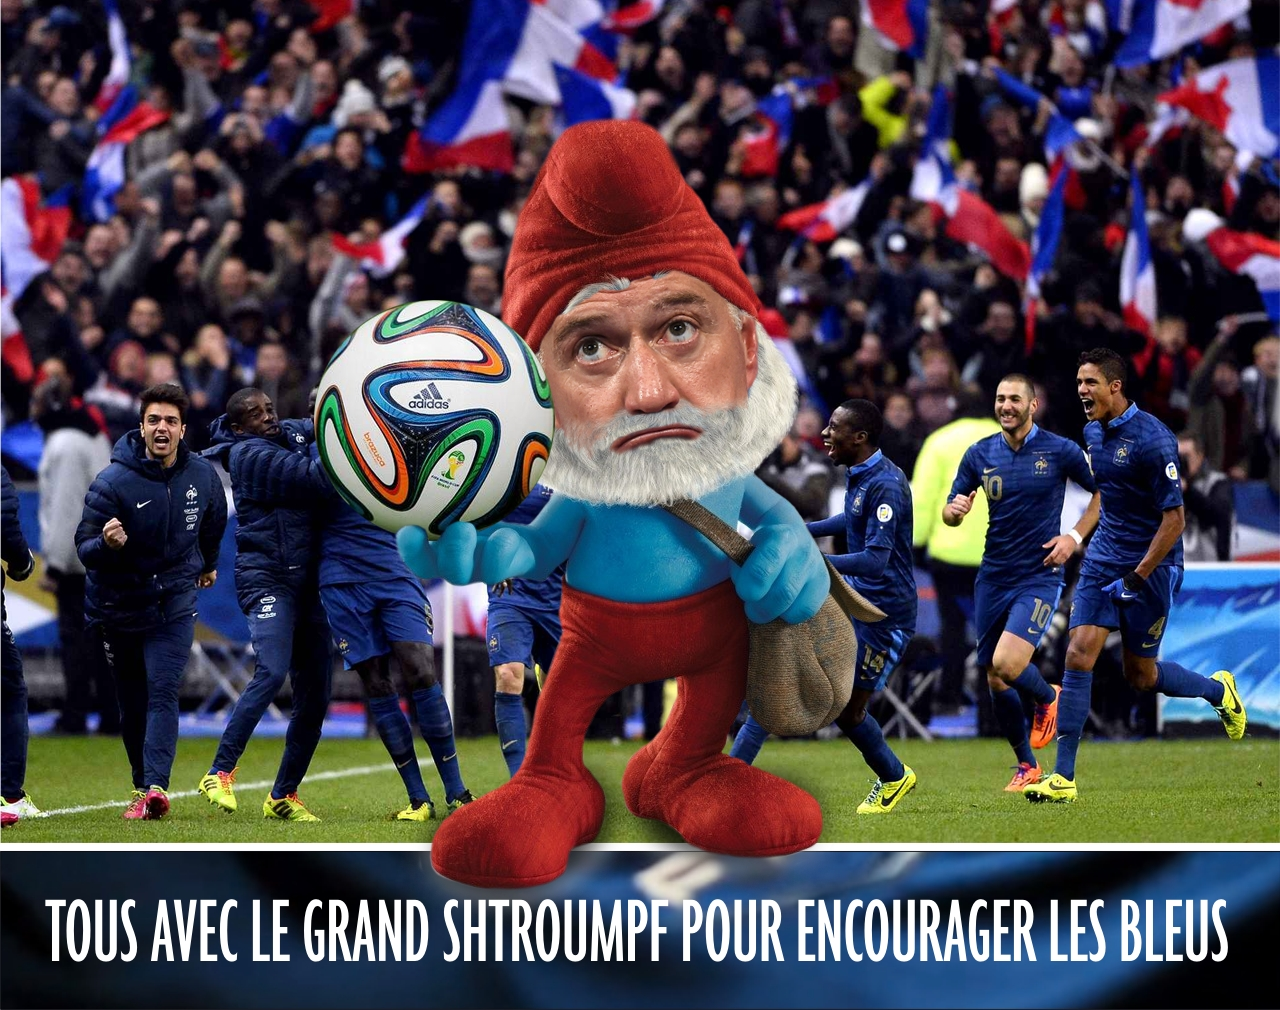 Didier Deschamps le Grand Shtroumpf